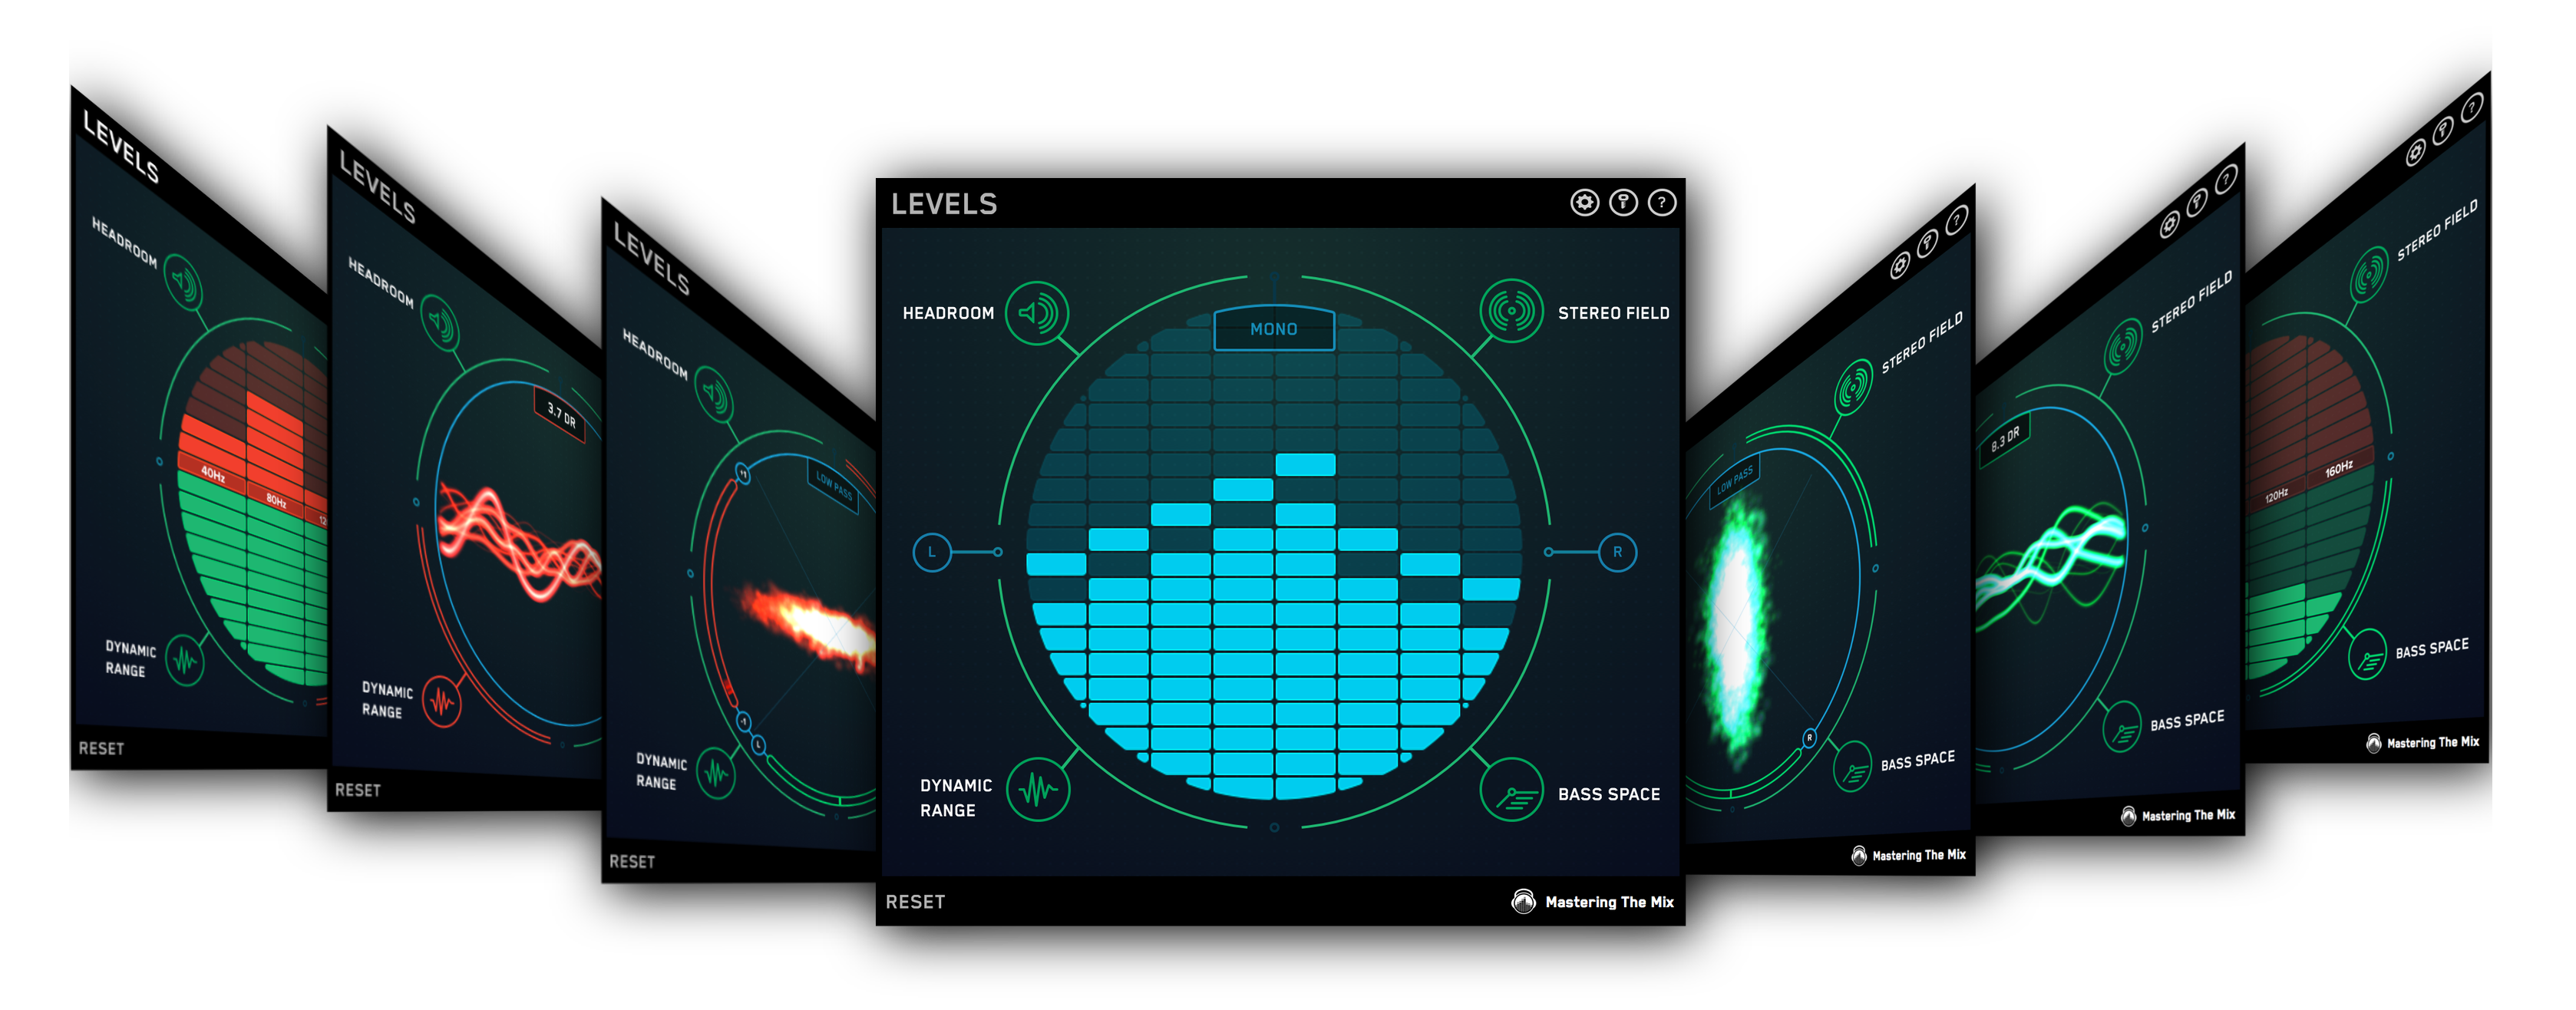 LEVELS mixing and metering plugin